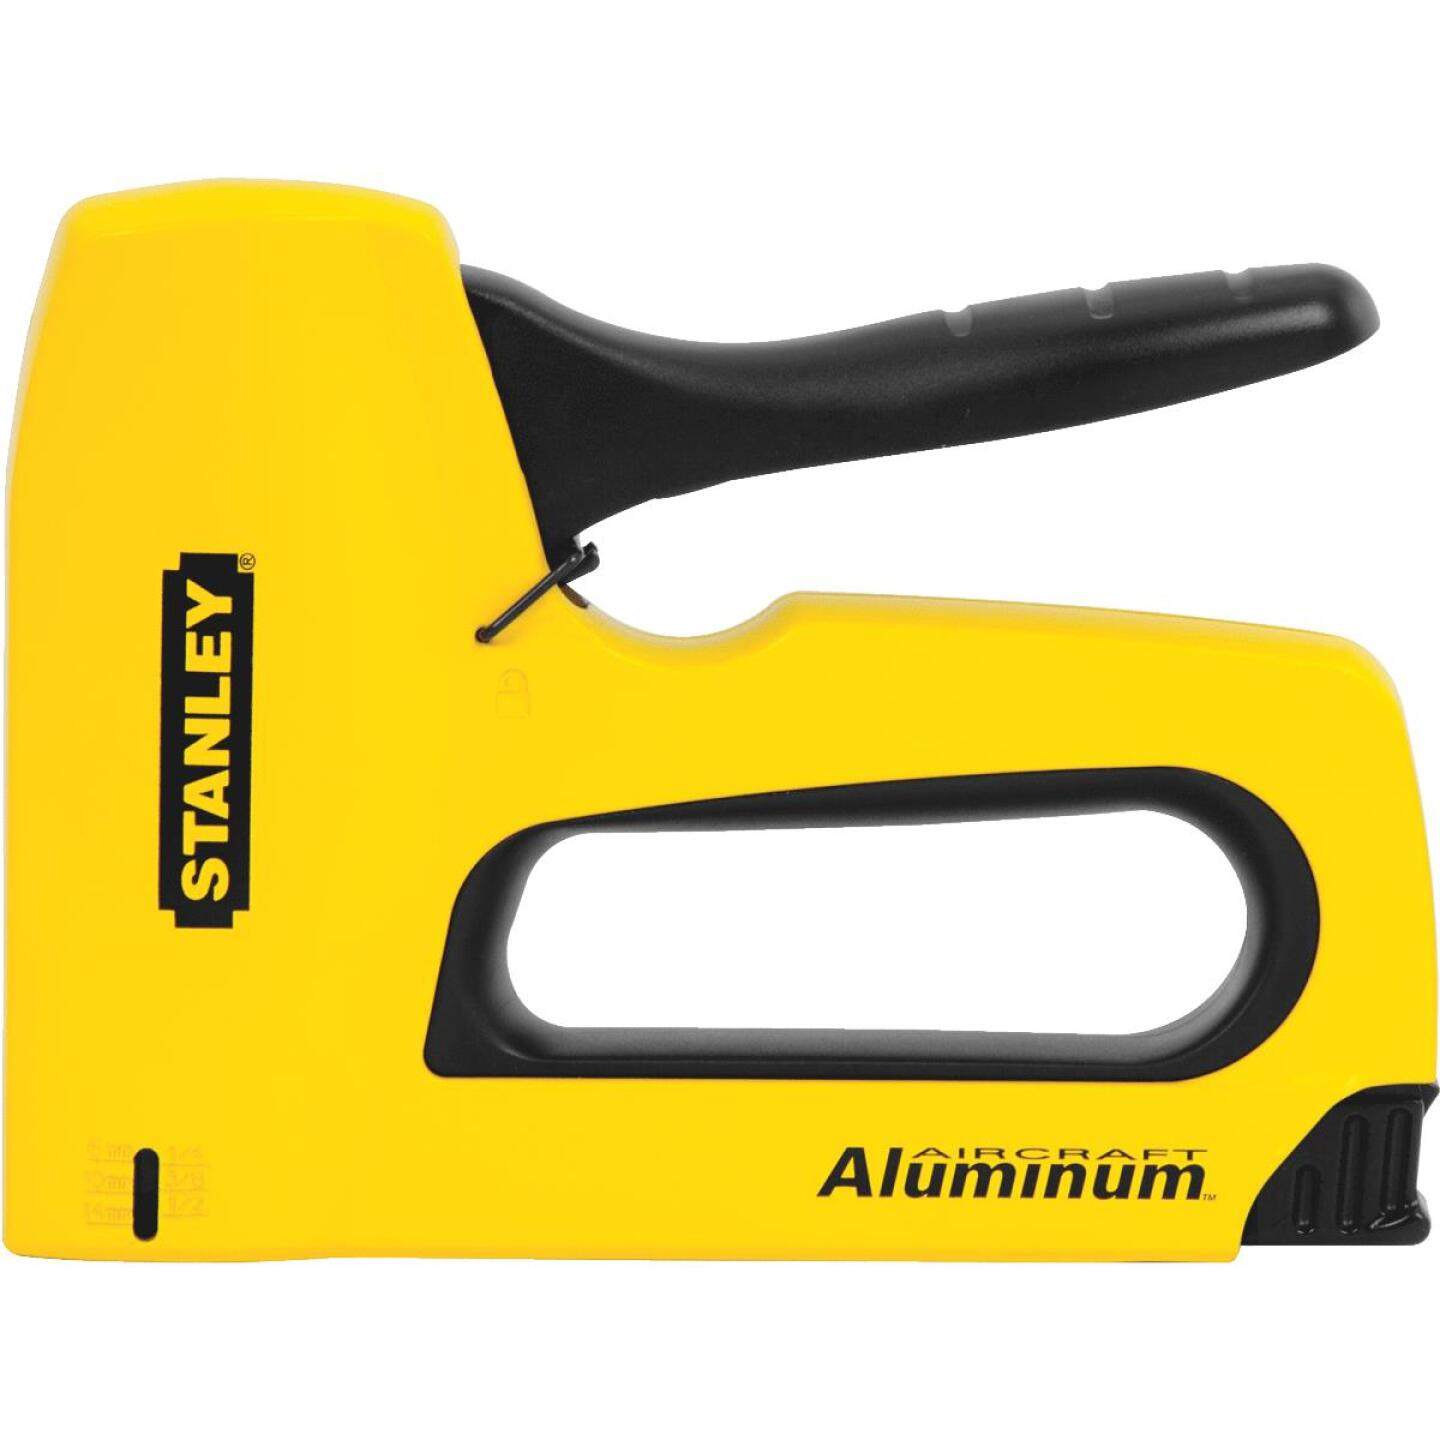 Stanley SharpShooter High-Visibility Heavy-Duty Staple Gun Image 3